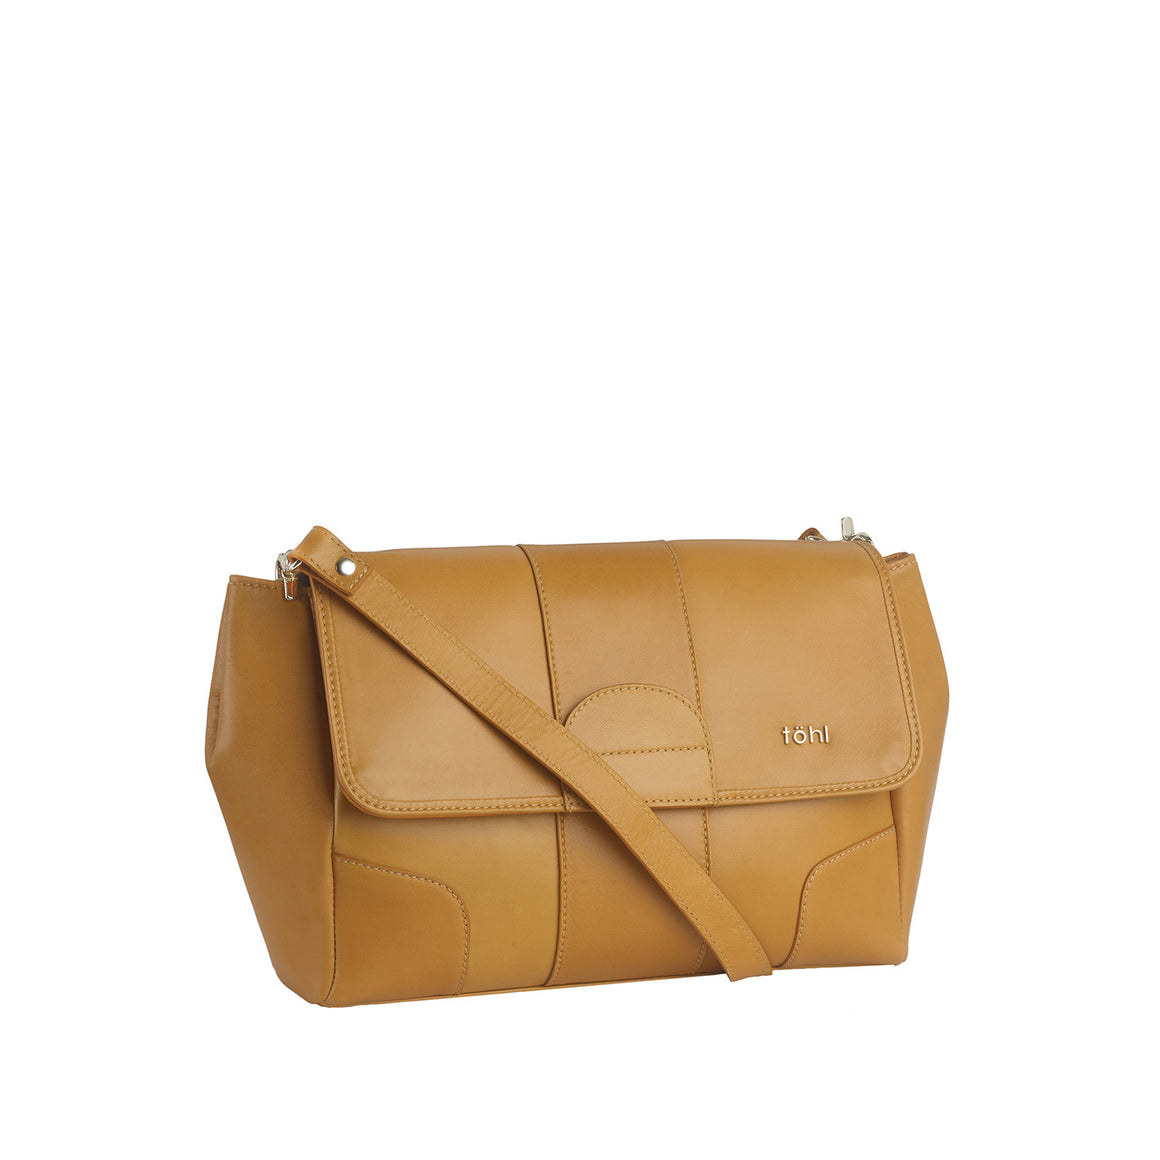 HH 0012 - TOHL JOPLIN WOMEN'S DAY BAG - SUN